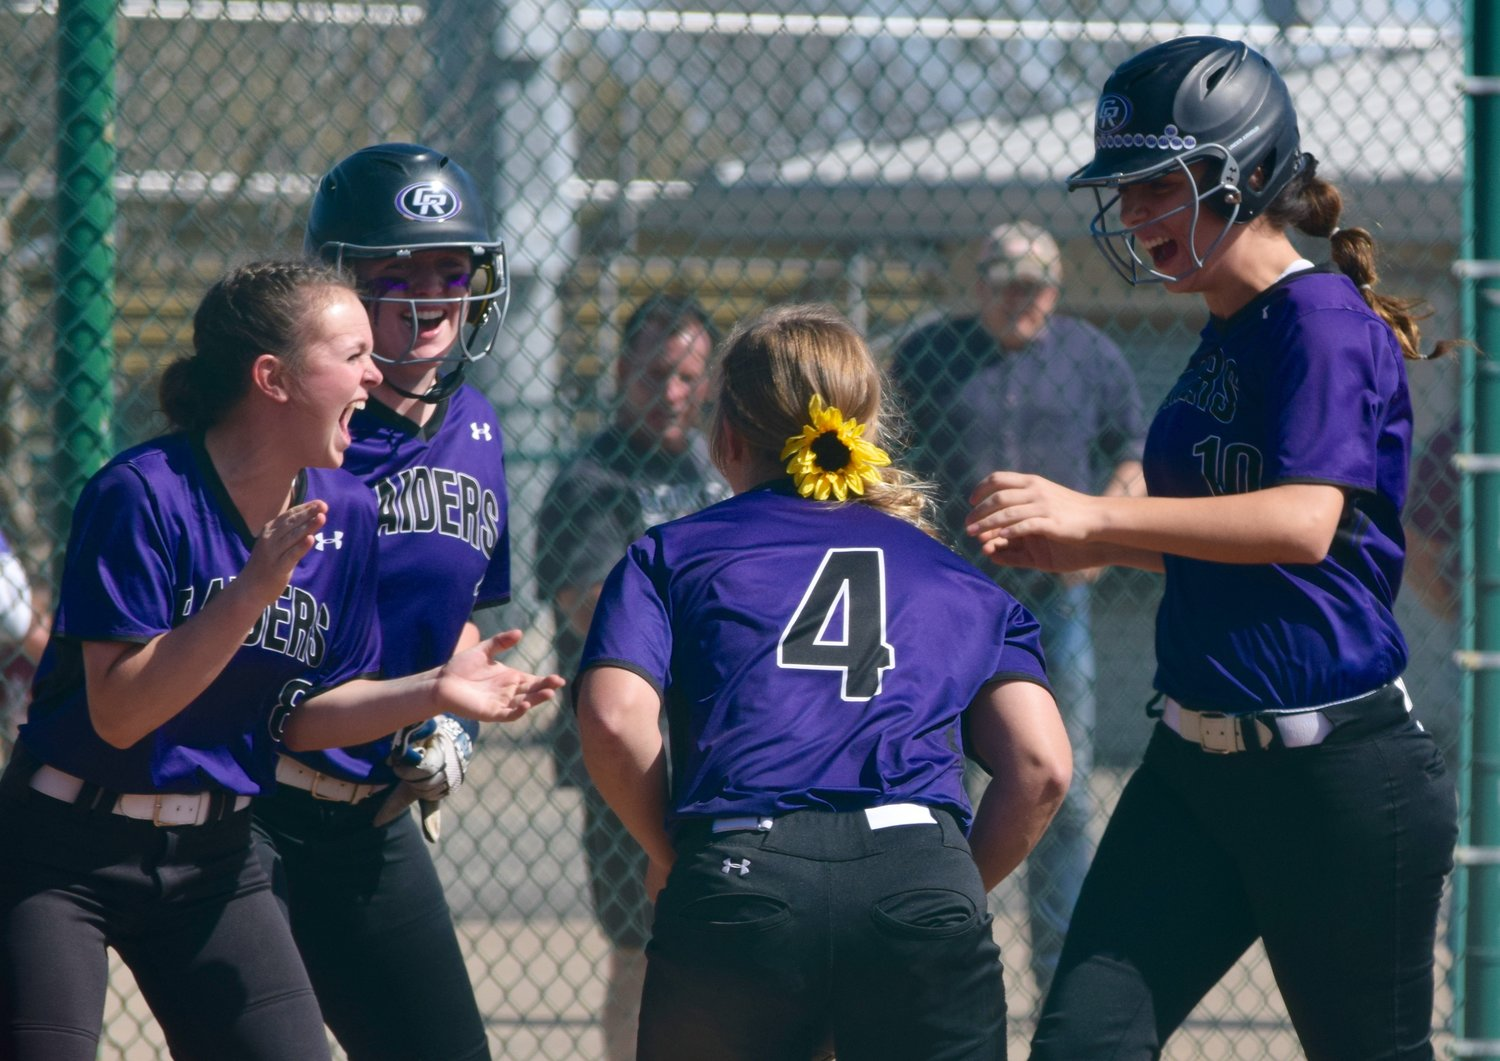 Stephie Elliott, right, celebrates with the rest oft eh Cedar Ridge team after hitting a grand slam to help the Lady Raiders beat Vista Ridge 9-2 on Saturday afternoon.